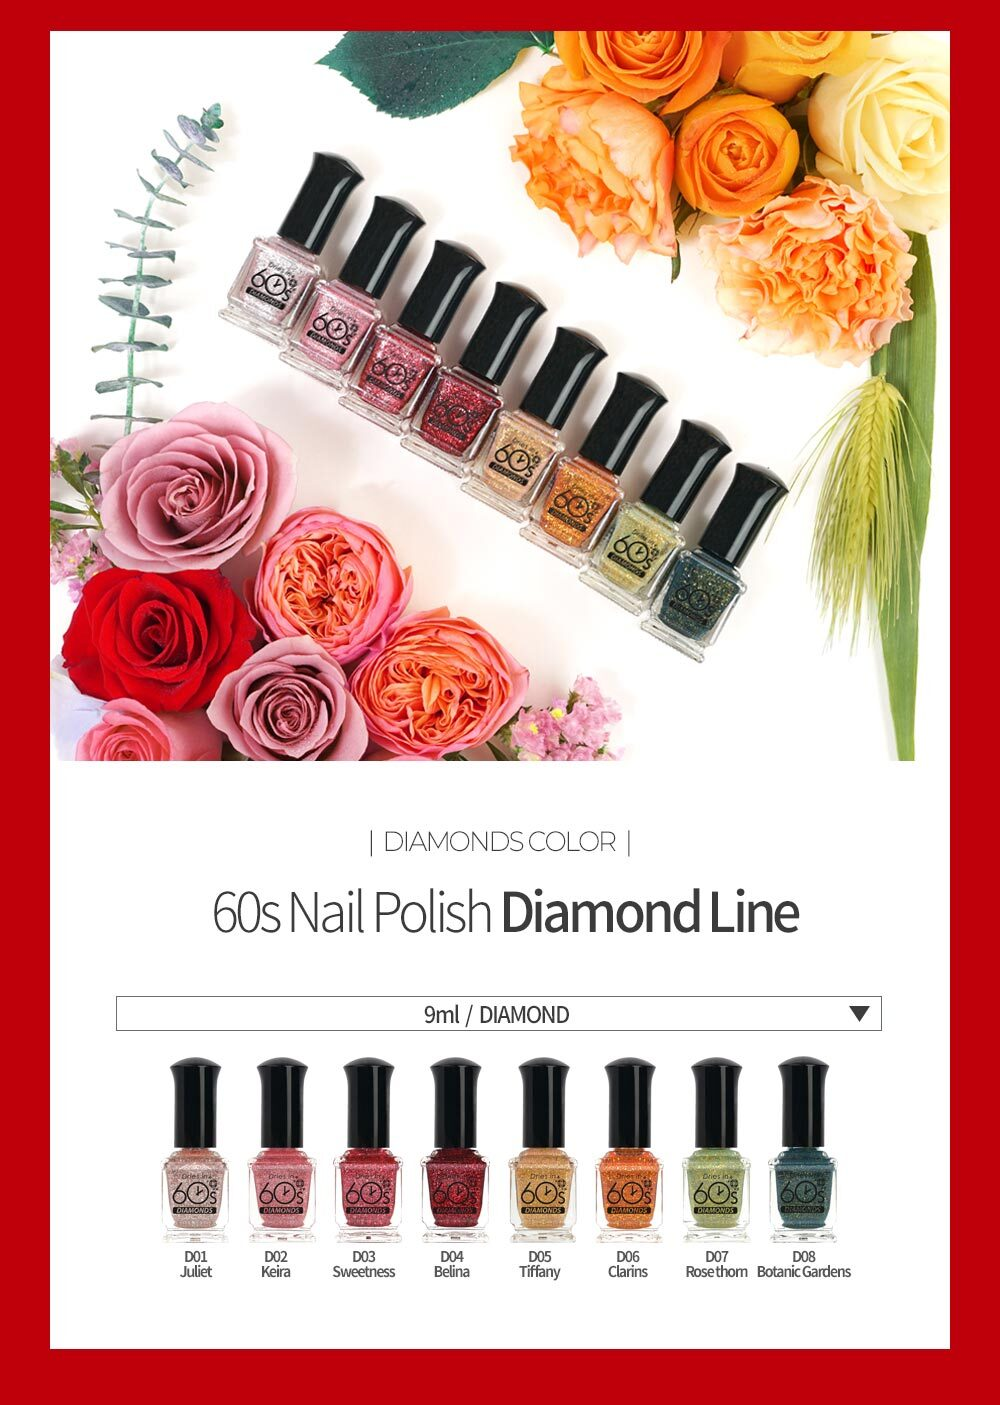 60 Seconds Nail Polish - Diamond Pearl Nail Polish Colors